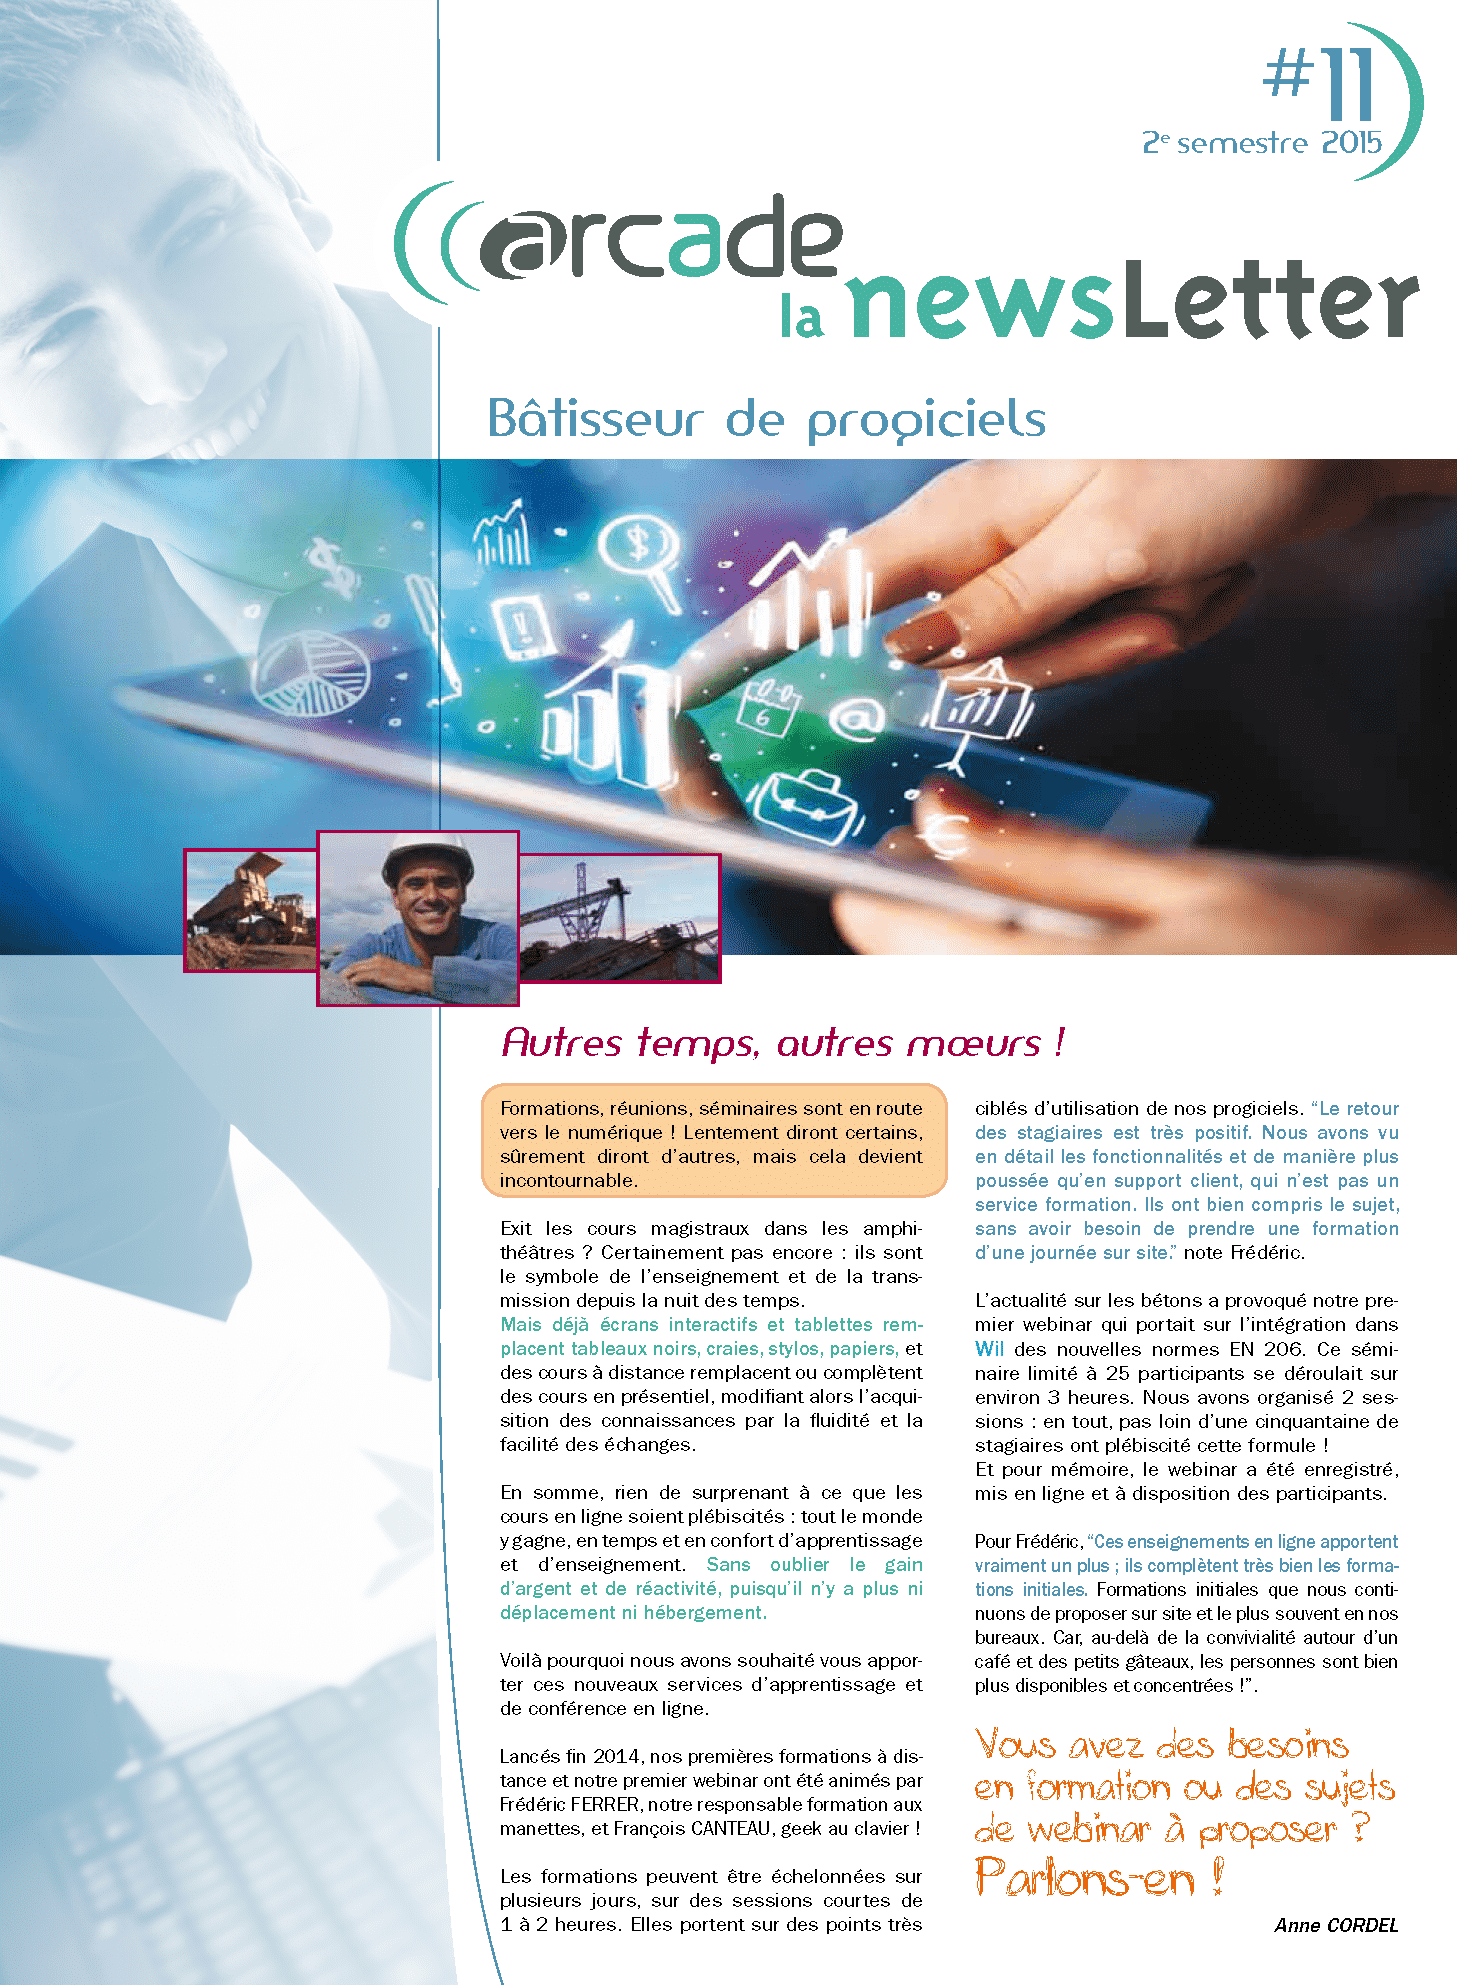 ARCADE_NewsLetter_JUIL15_N11_Page_1